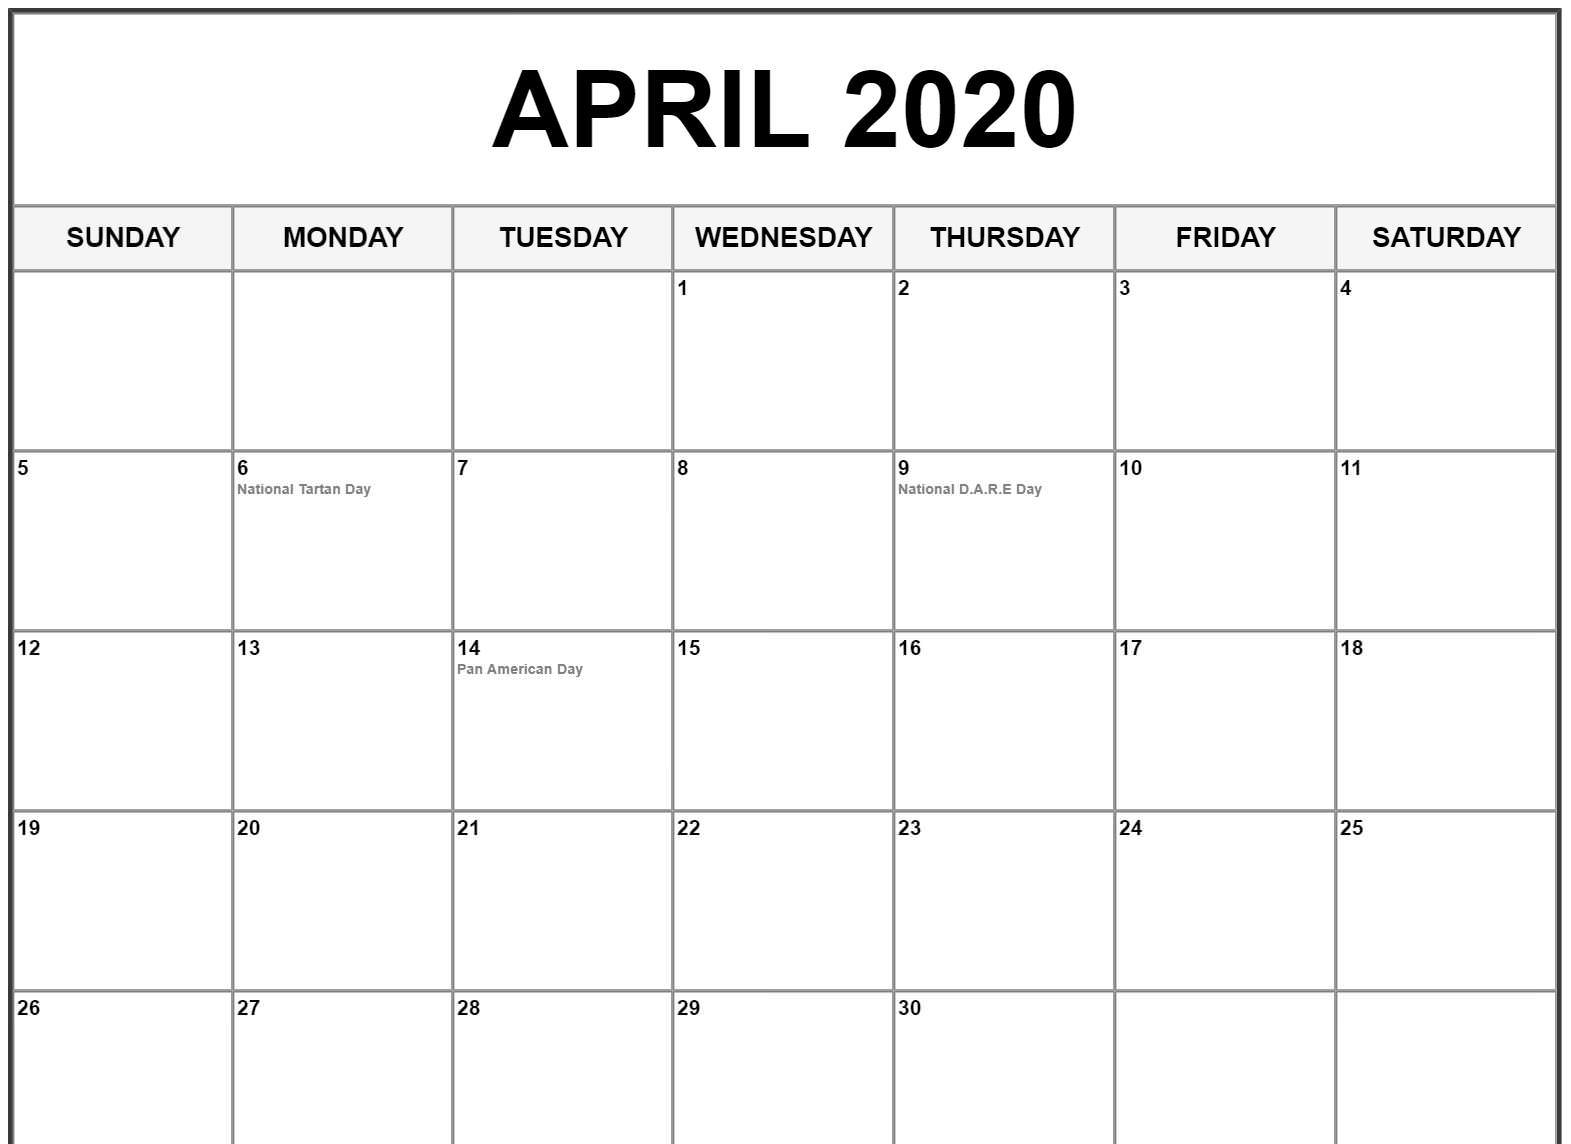 April 2020 Calendar with Holidays Canada